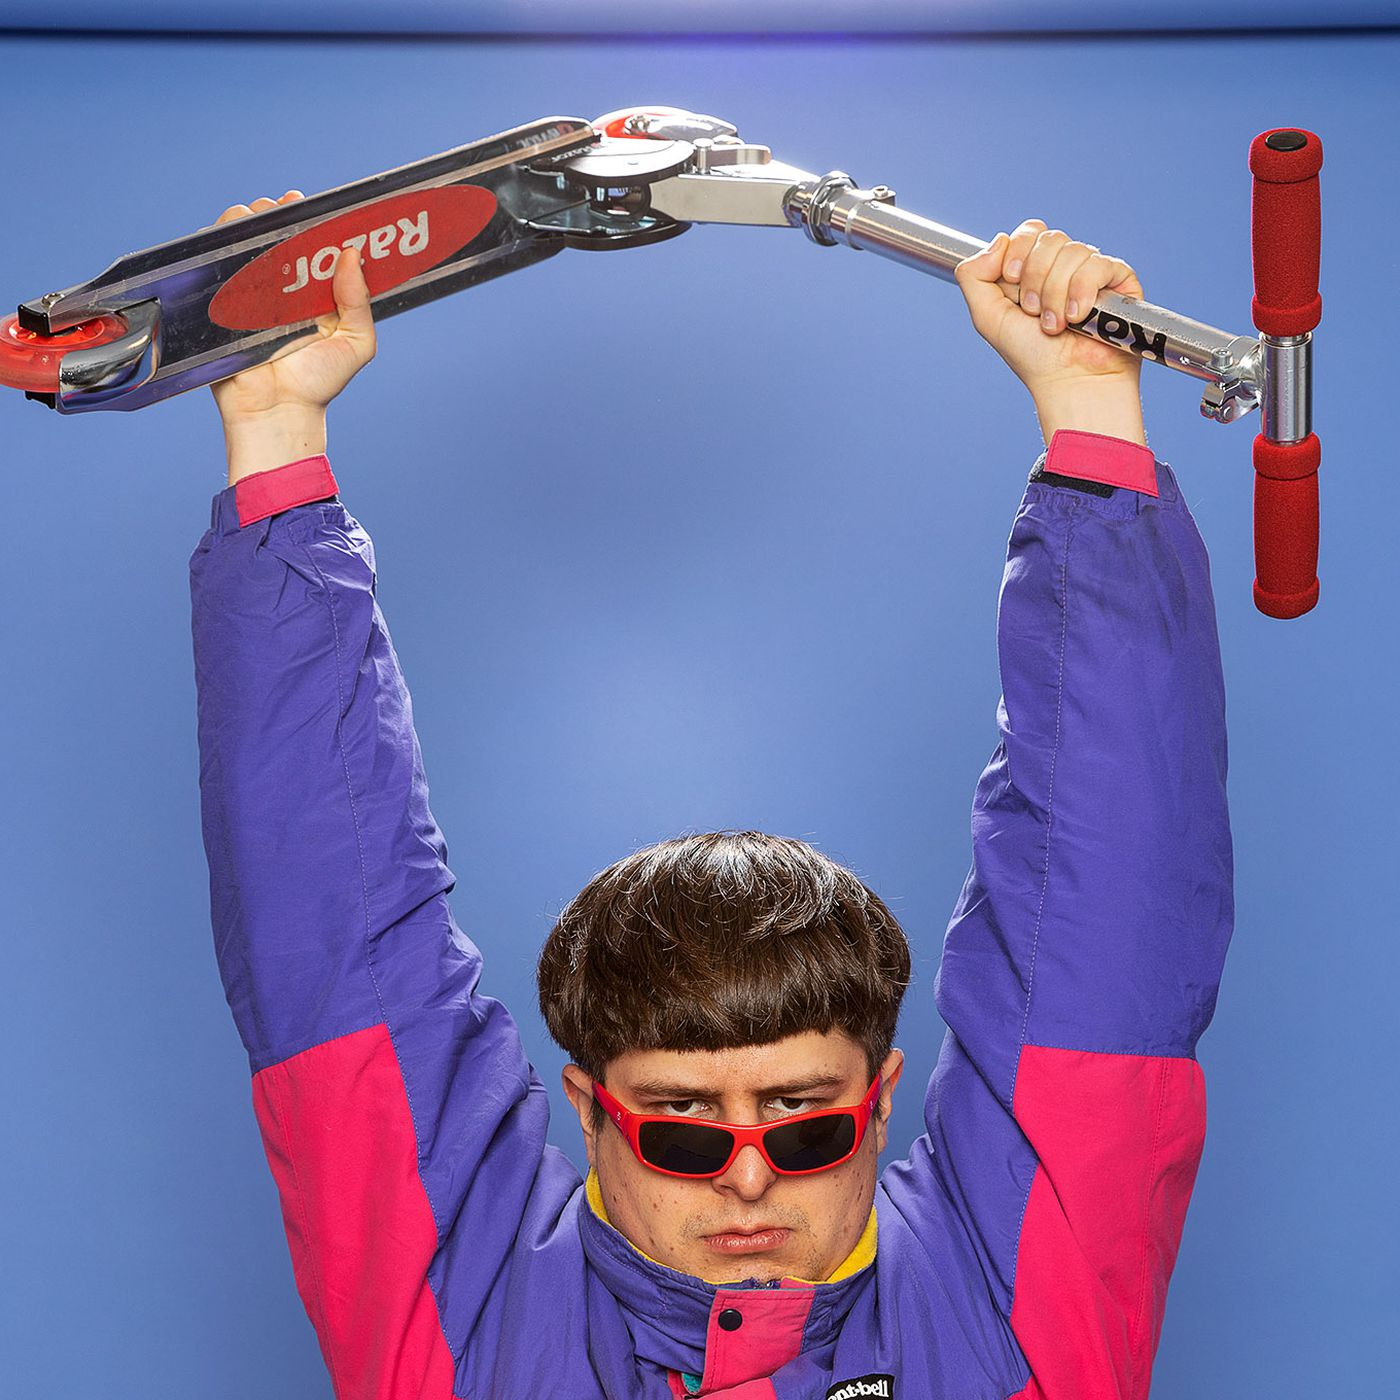 What's in your bag, Oliver Tree? - The Verge